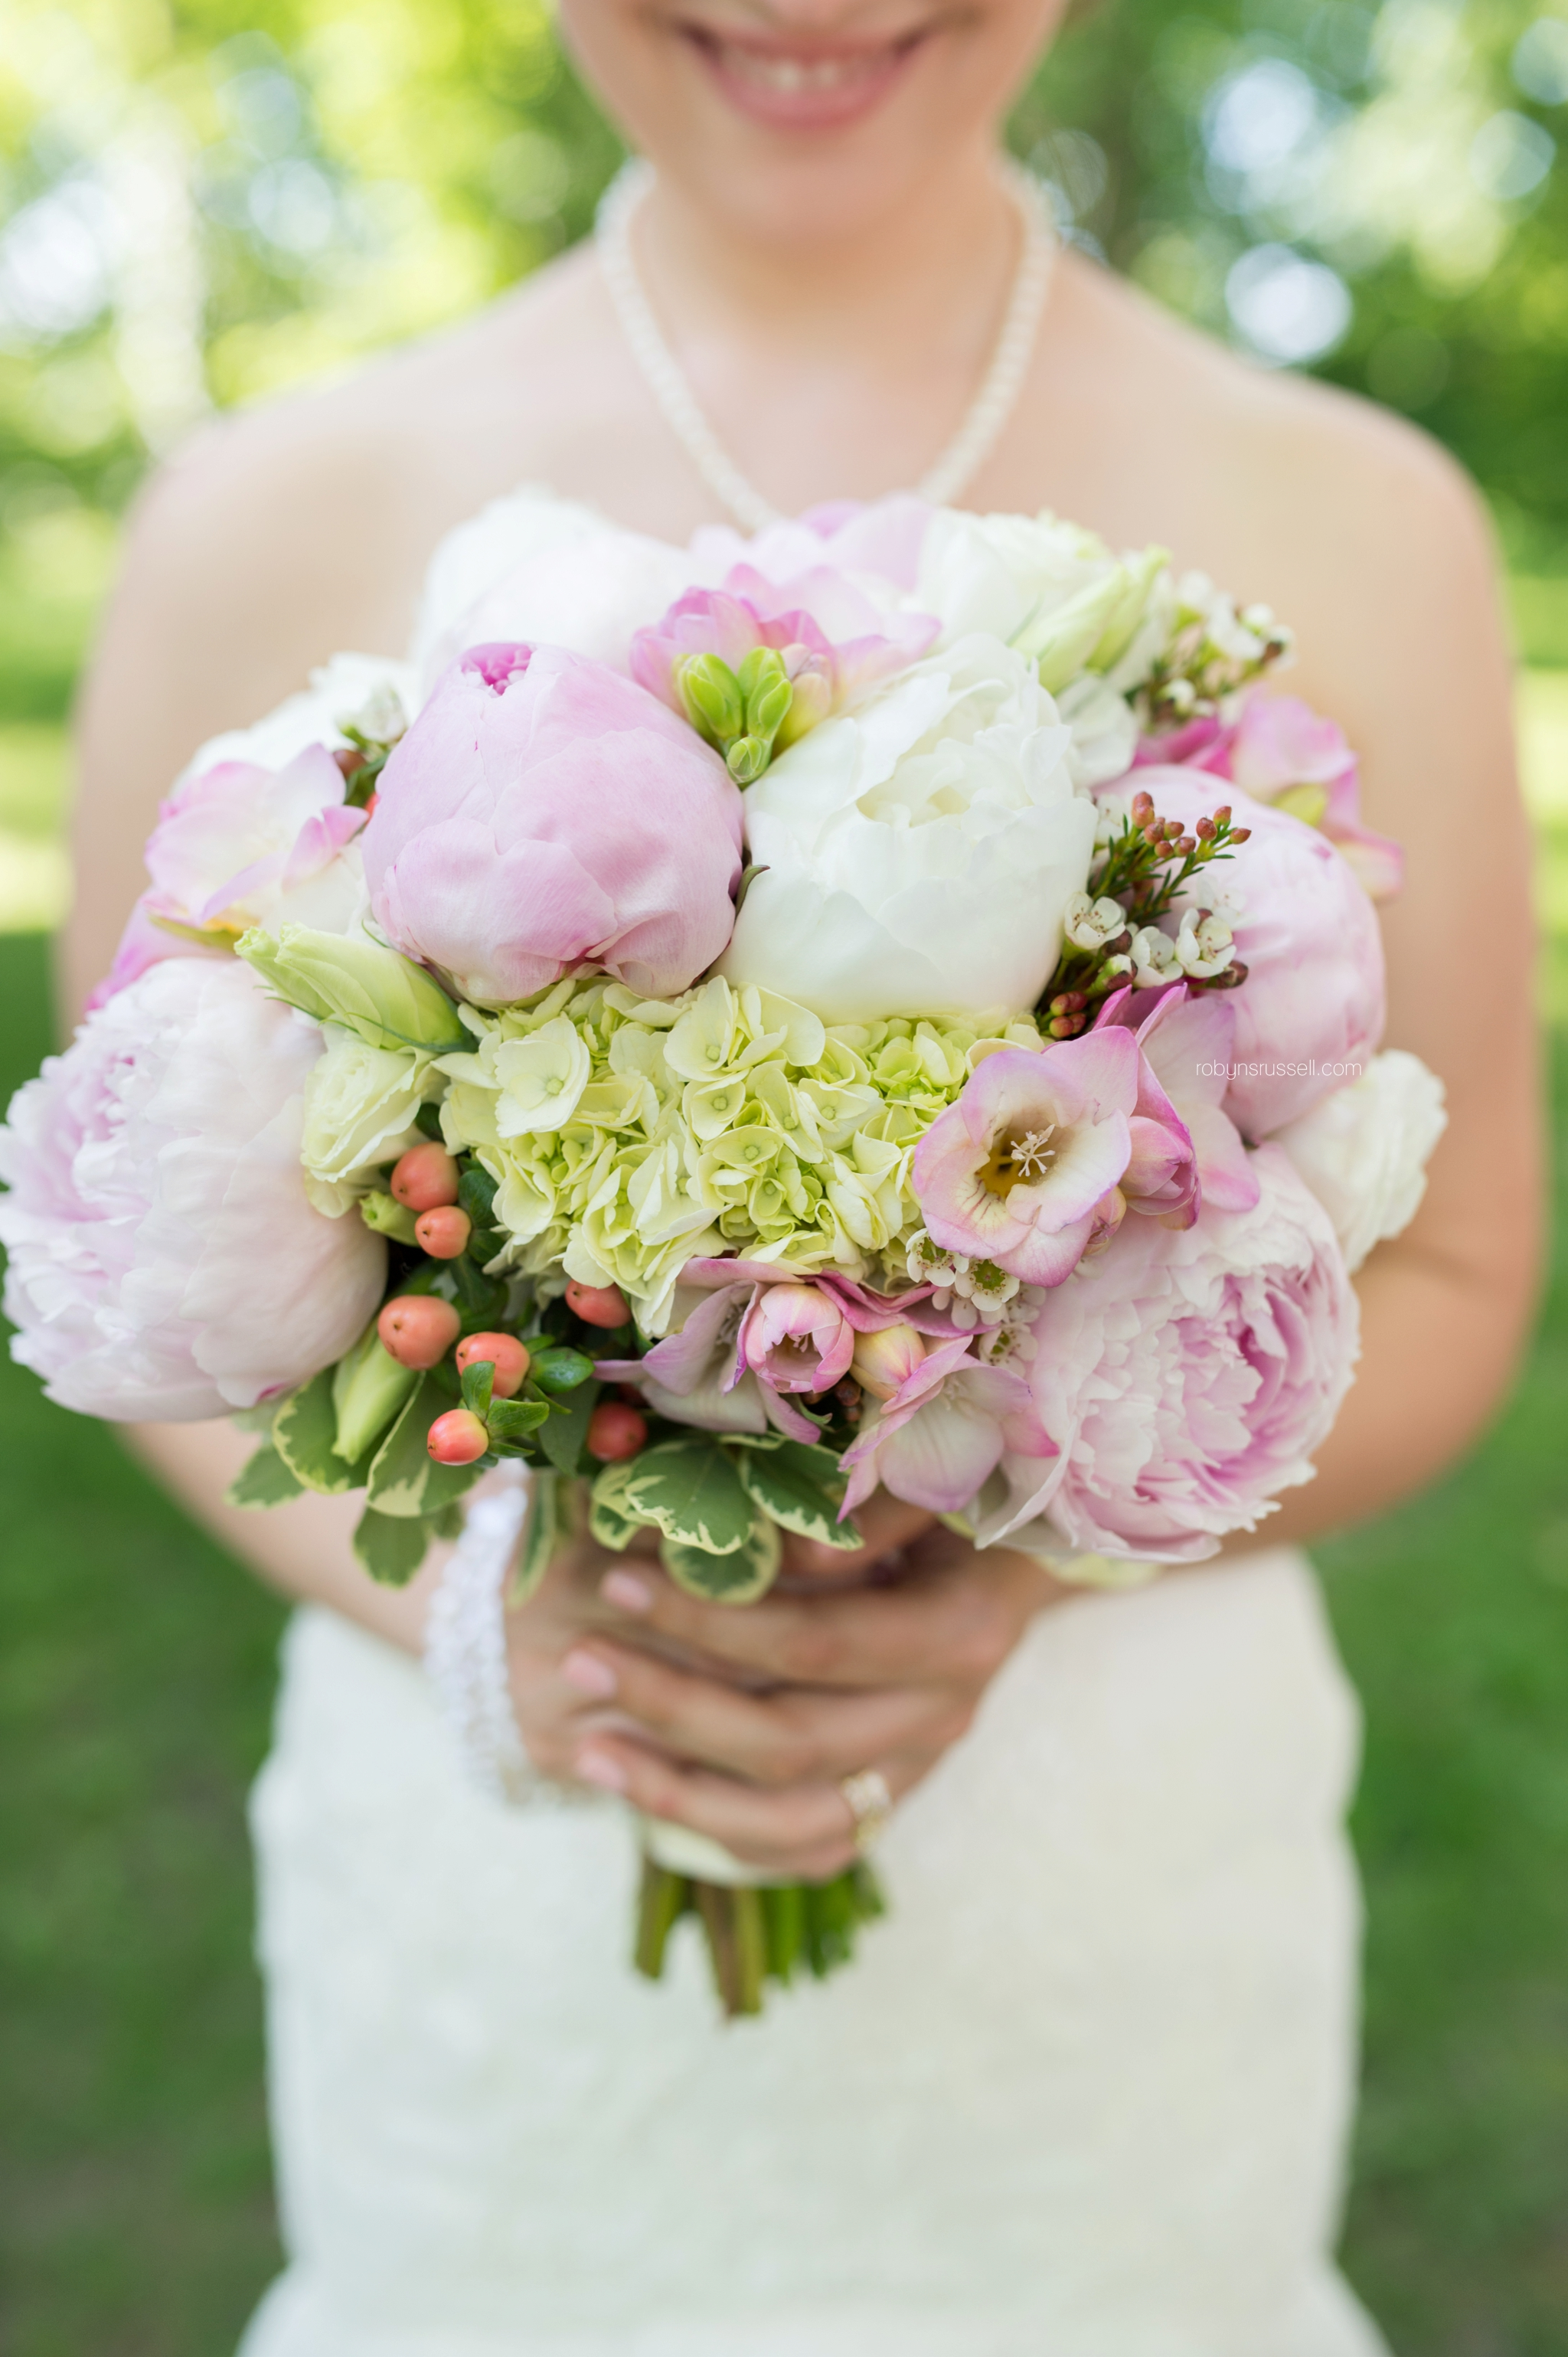 23-brides-summer-flowers-the-watering-can-wedding-day.jpg